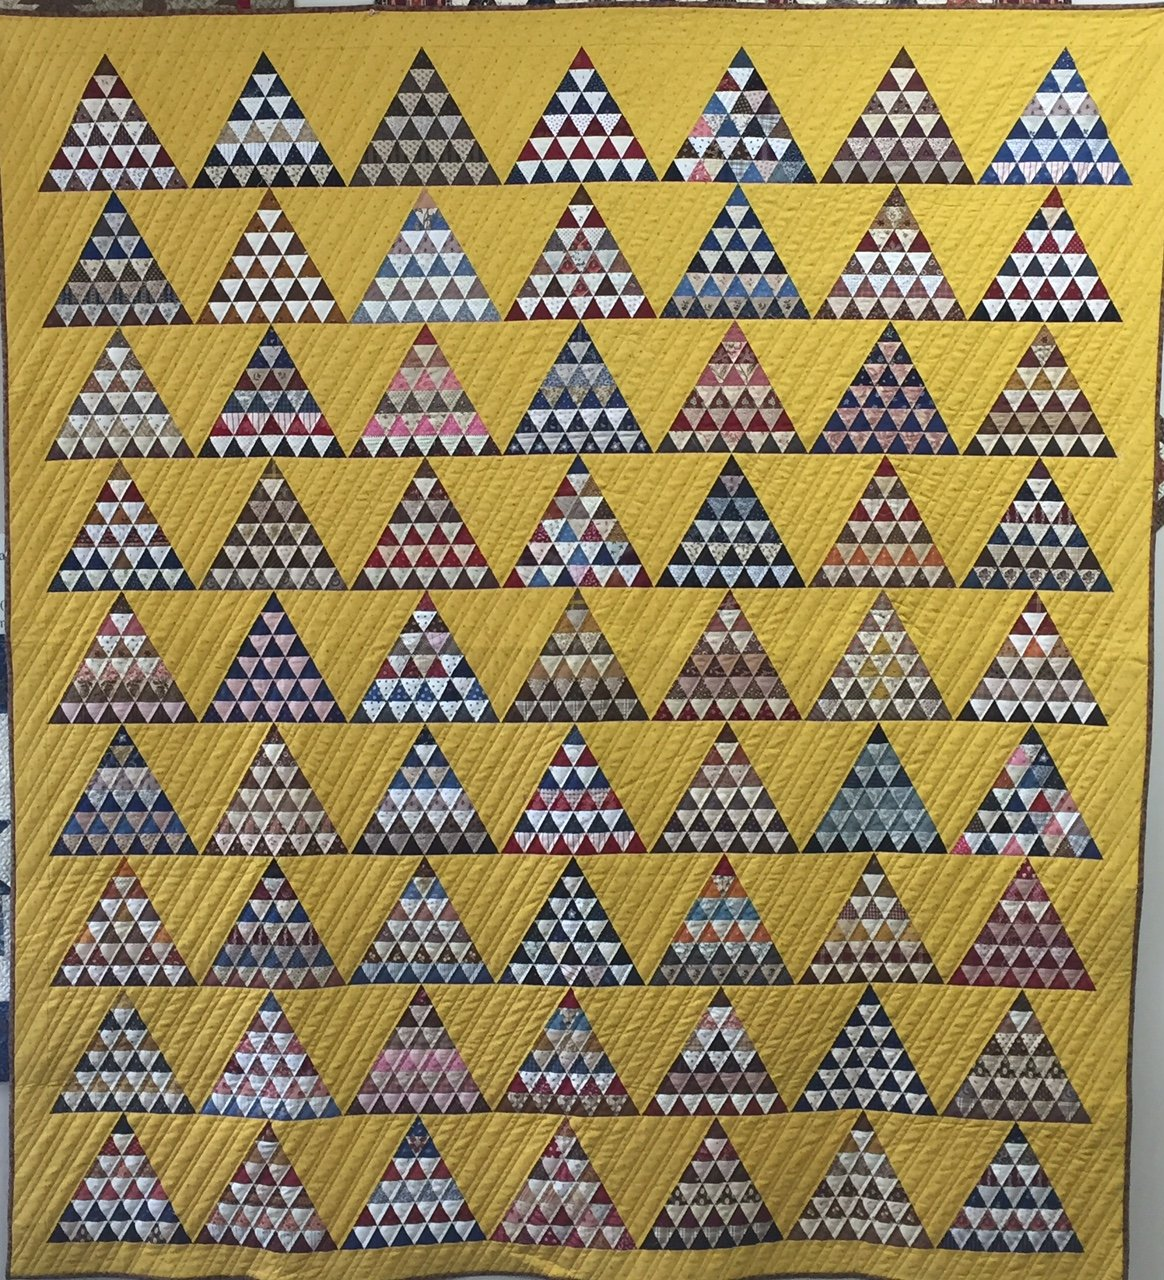 Lost Pyramids pattern with template